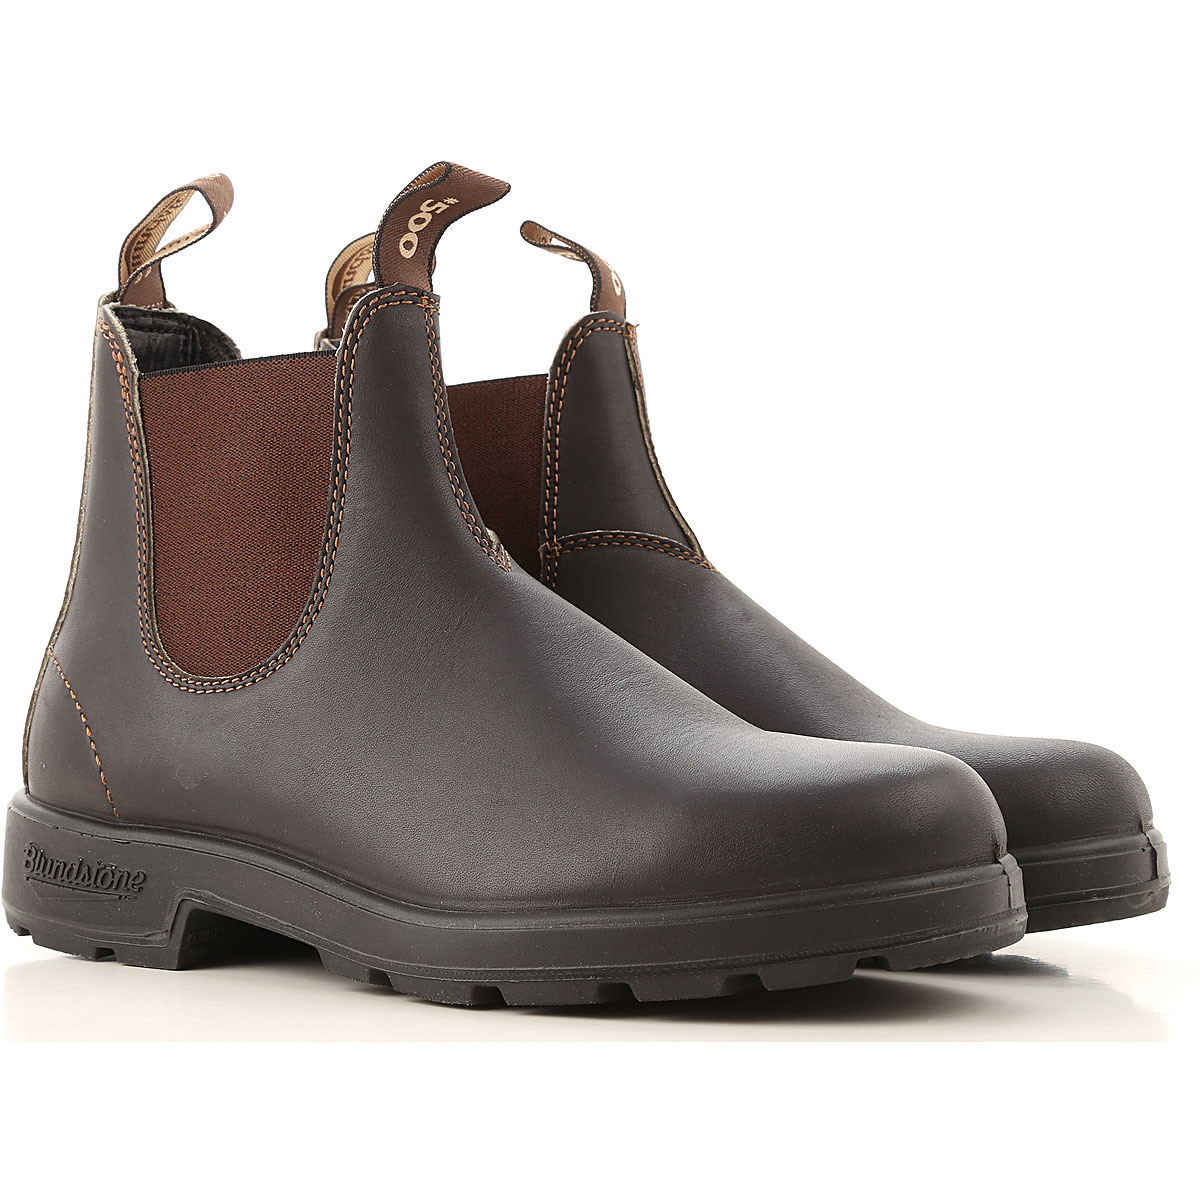 Blundstone Chelsea Boots for Men, Stout Brown, Leather, 2019, 11 8.5 9 9.5